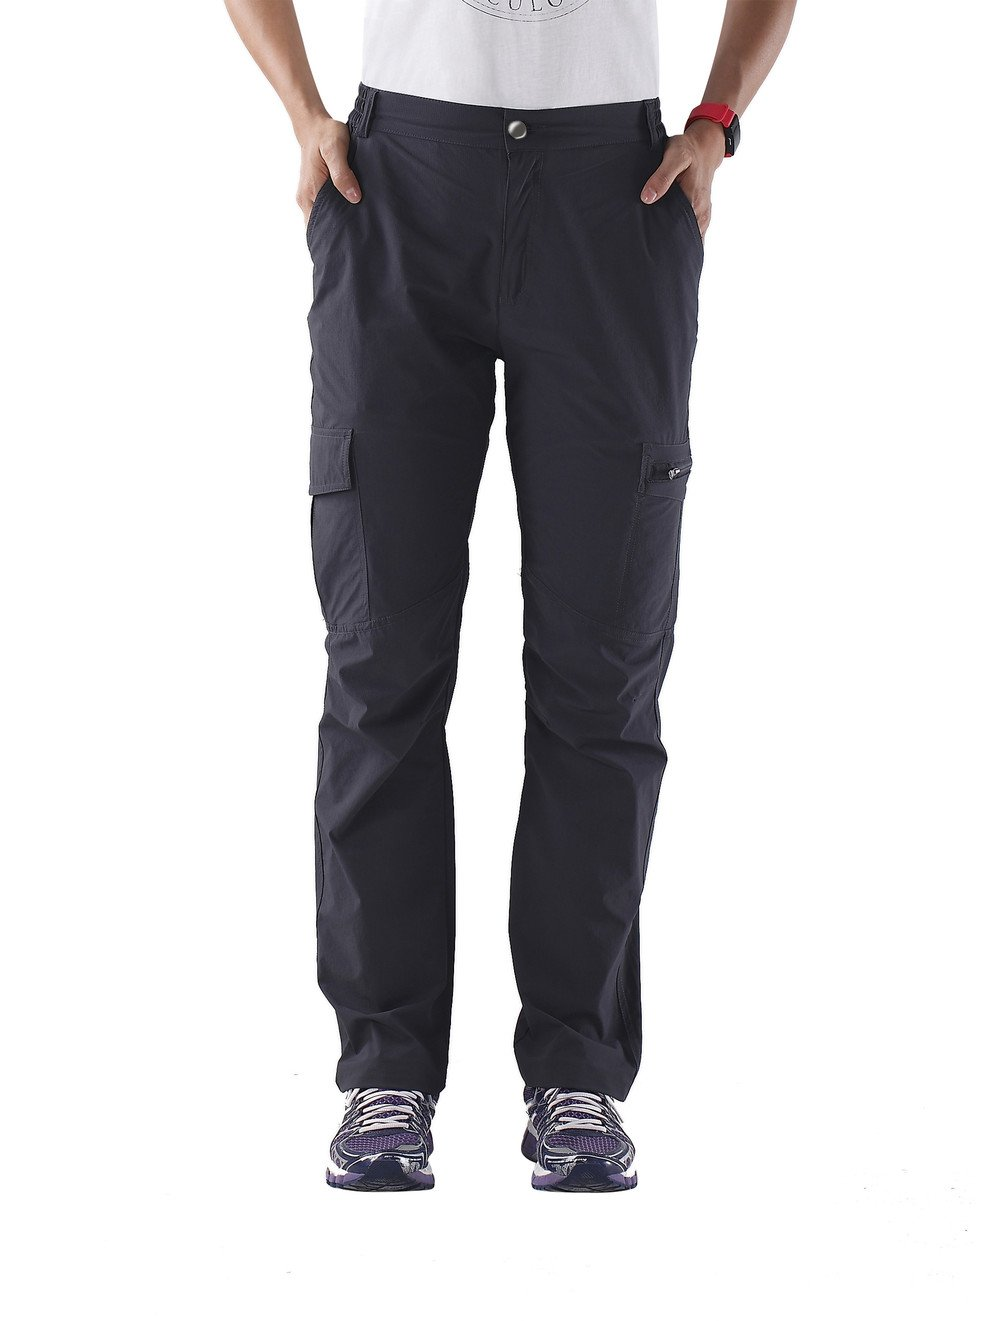 Nonwe Ladies' Tactical Cargo Quick Drying Outdoor Pants Gray XL/32 Inseam by Nonwe